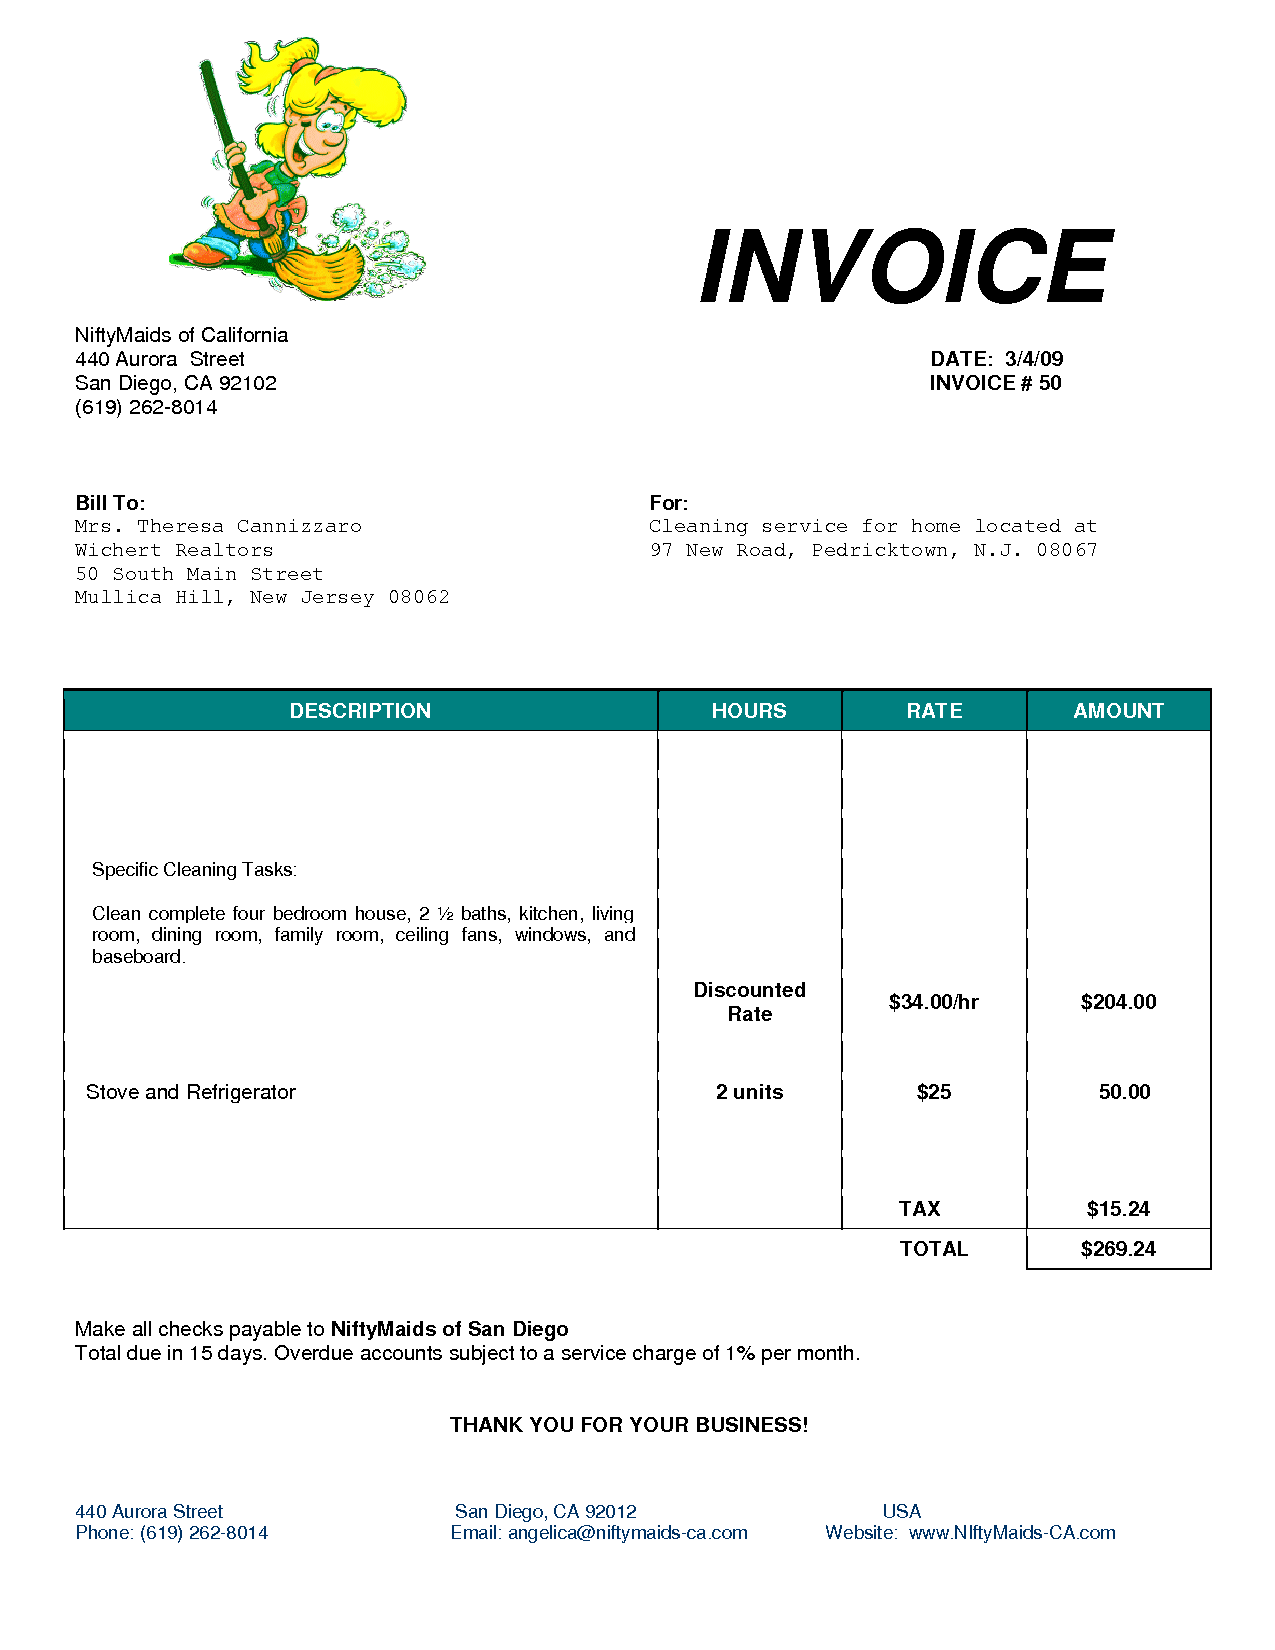 Virtually There Eticket Receipt Cleaning Invoice Template Uk  Invoice Example Hvac Service Invoices Excel with Printable Rent Receipt Form Excel Cleaning Service Invoice Template Sample Uk Graphic Design Pr  Hsbcu Photo Invoice Template Pdf